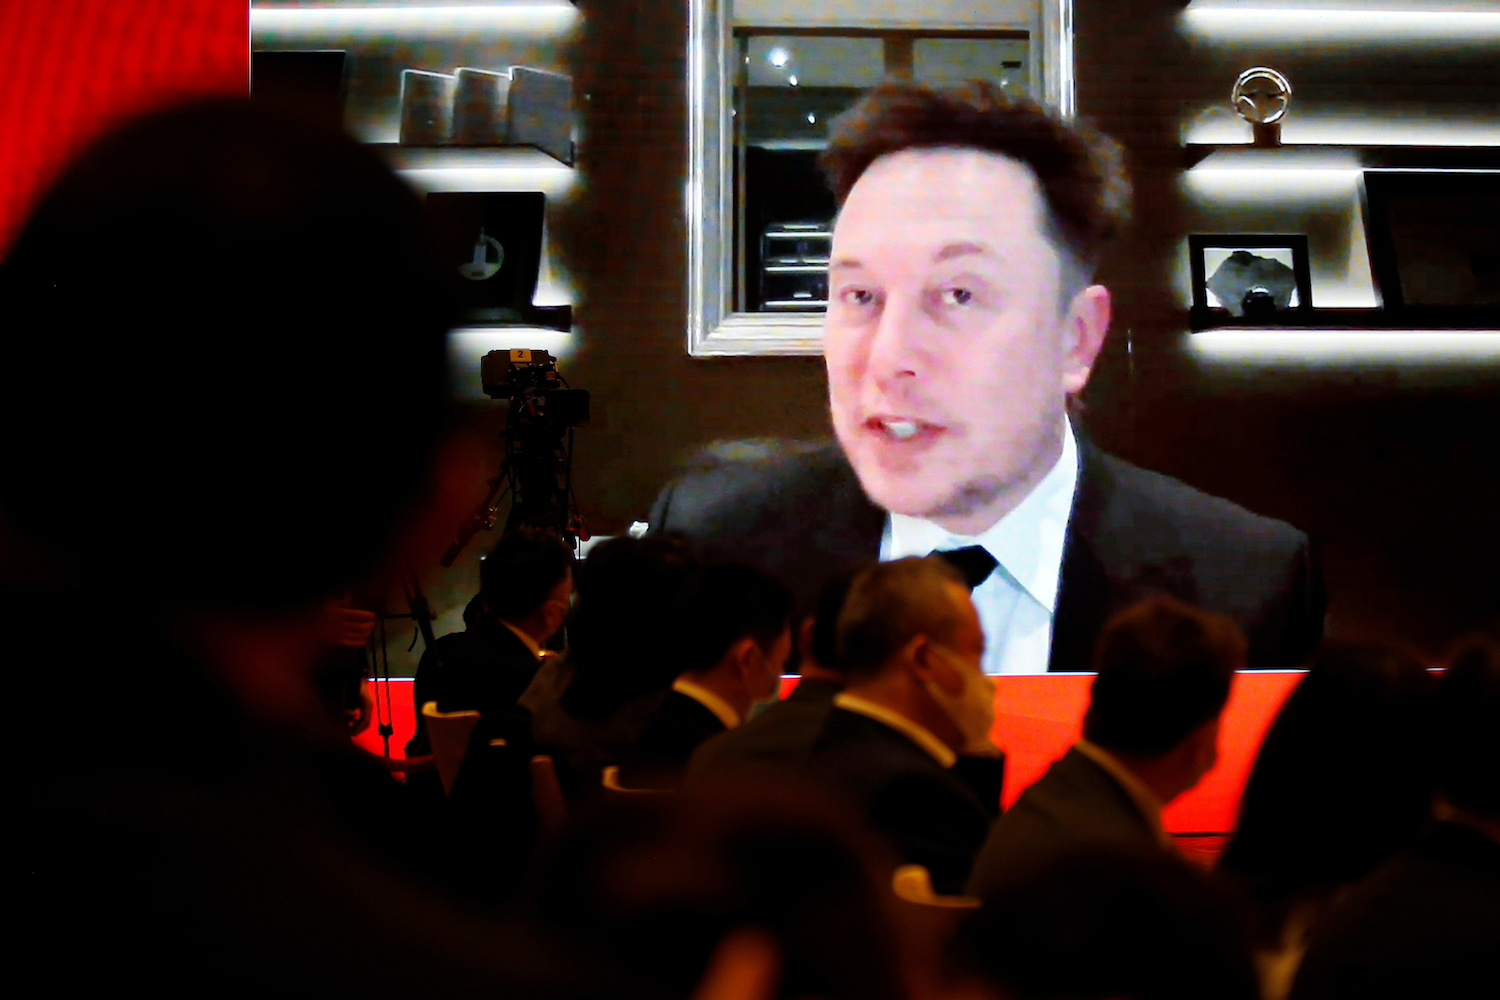 Consumer complaints mount for Tesla as Musk rejects spying fears